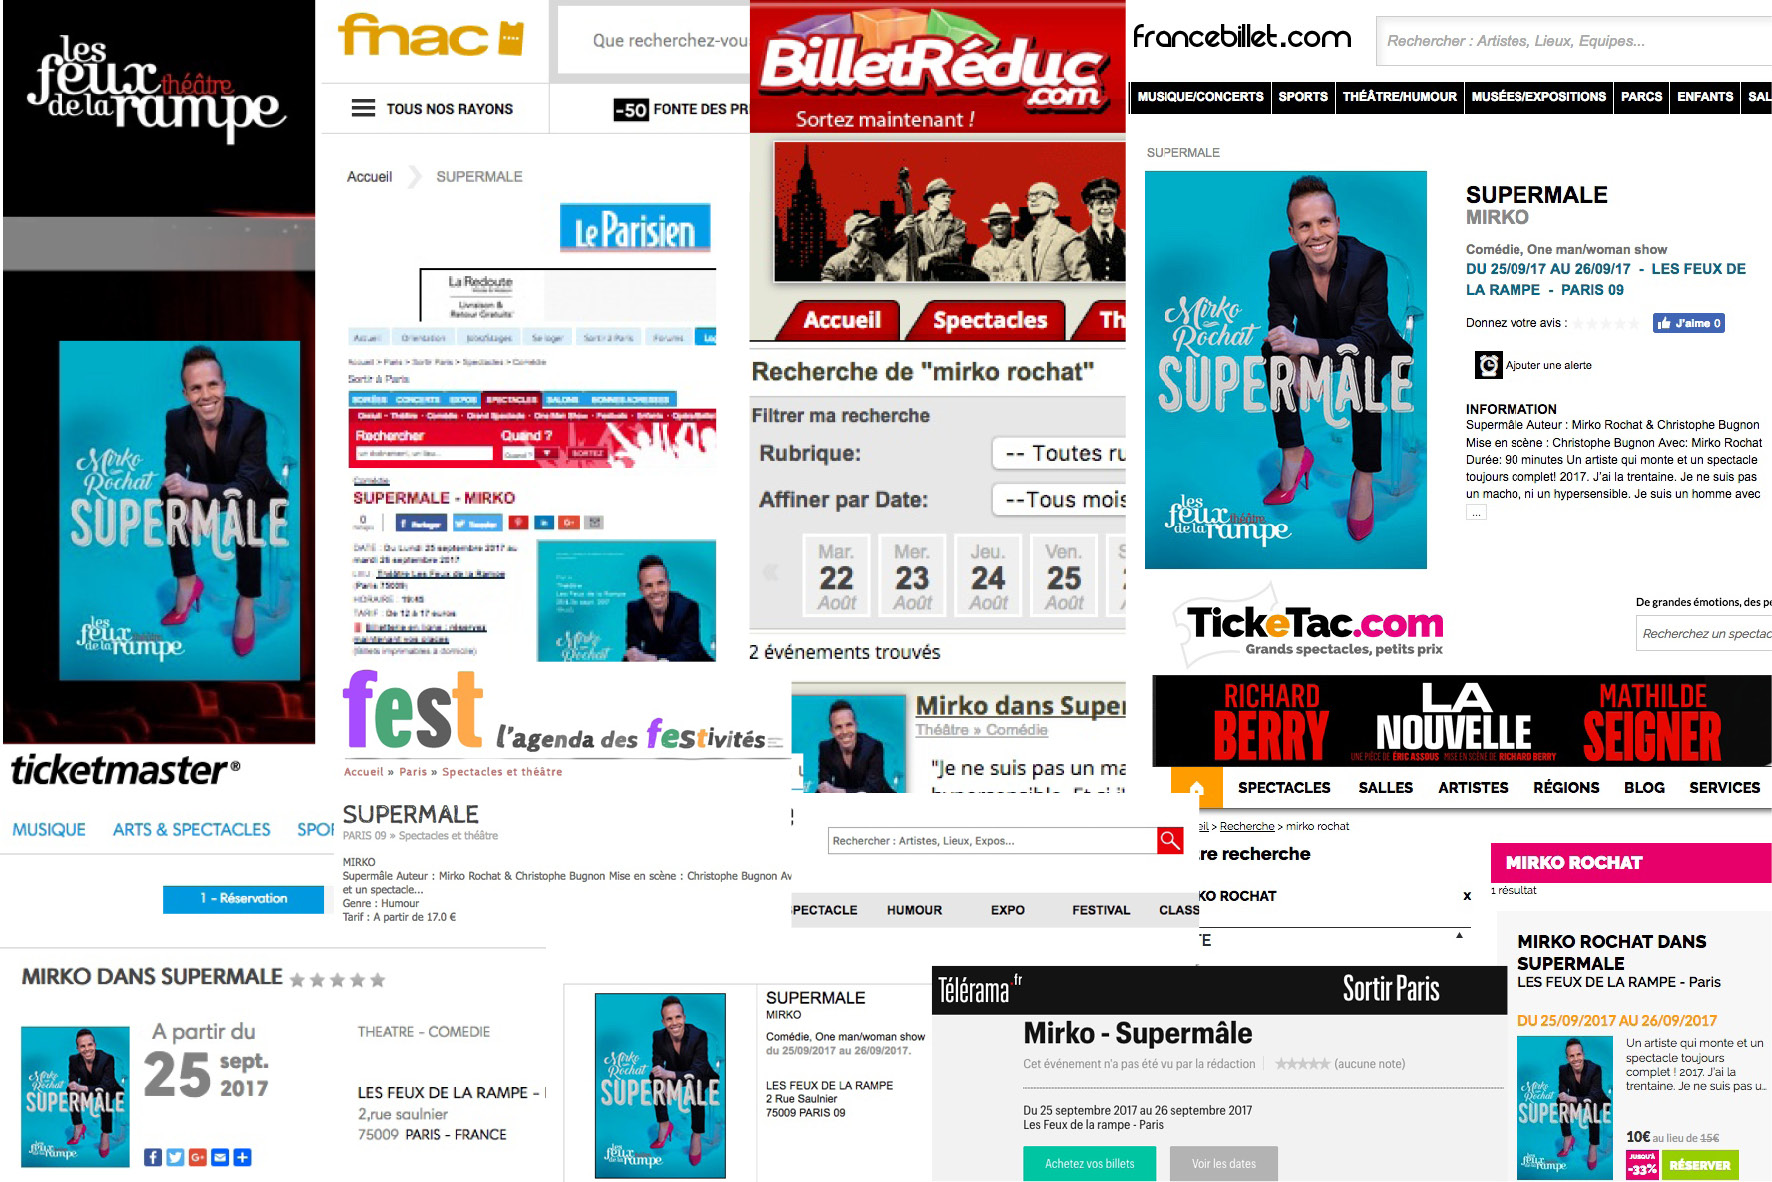 Billetterie Paris Supermâle - Feux de la Rampe, Fnac, Billet Réduc, France Billet, Le Parisien, Ticketac, Fest, Ticketmaster, Télérama